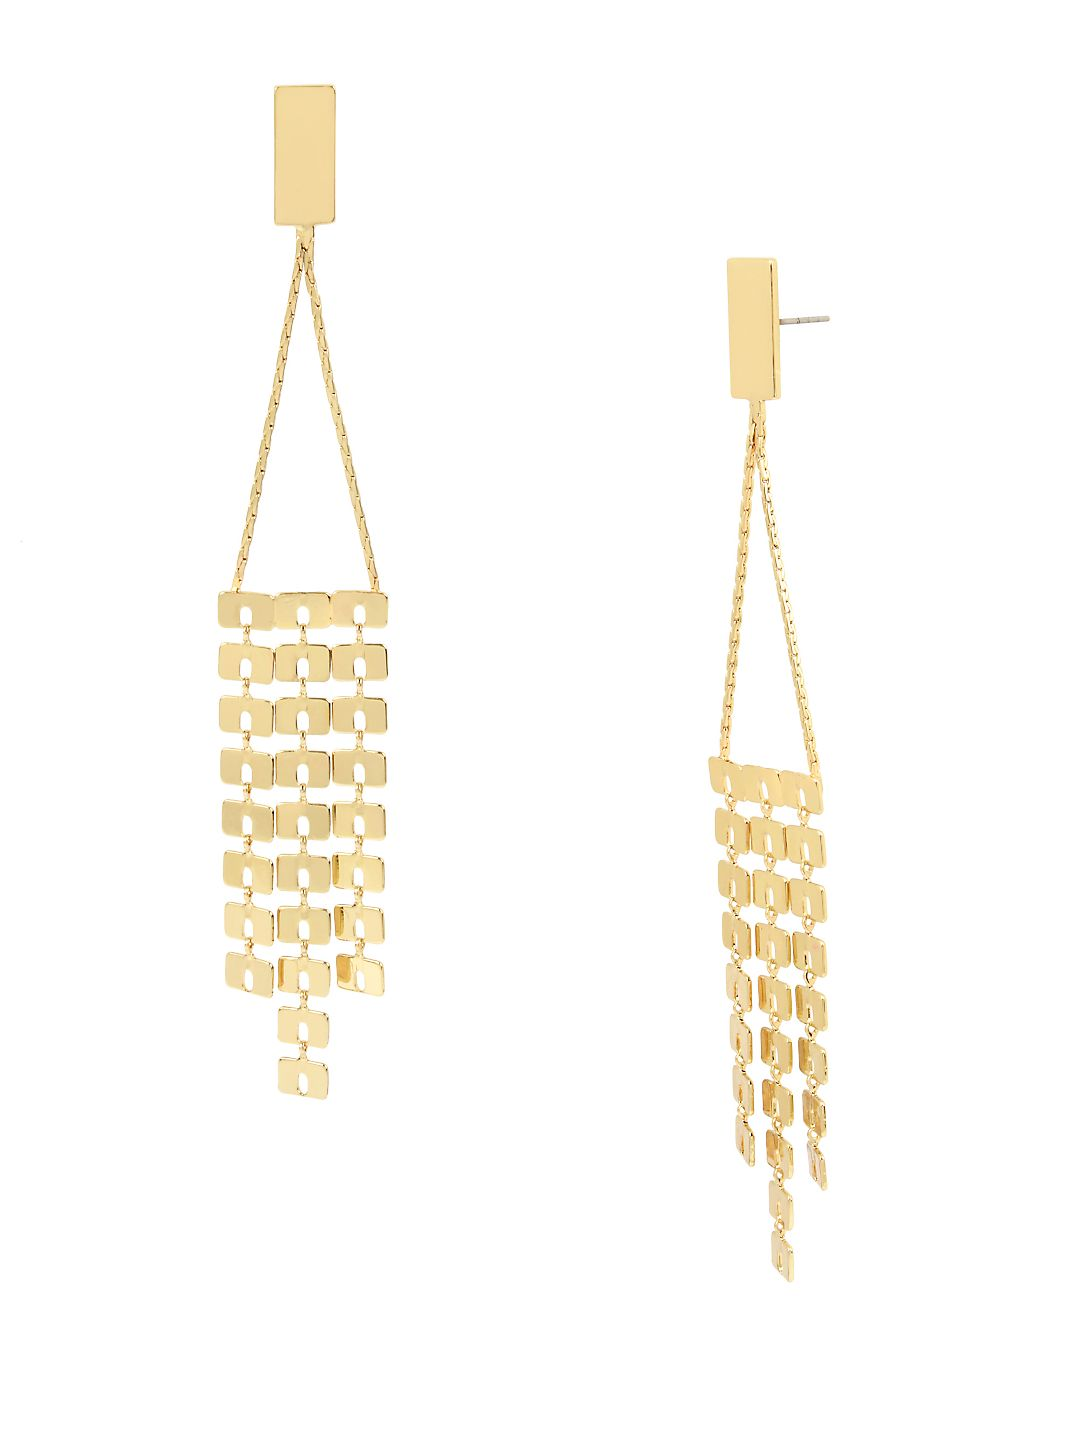 Future Femme Geometric Chain Fringe Chandelier Earrings